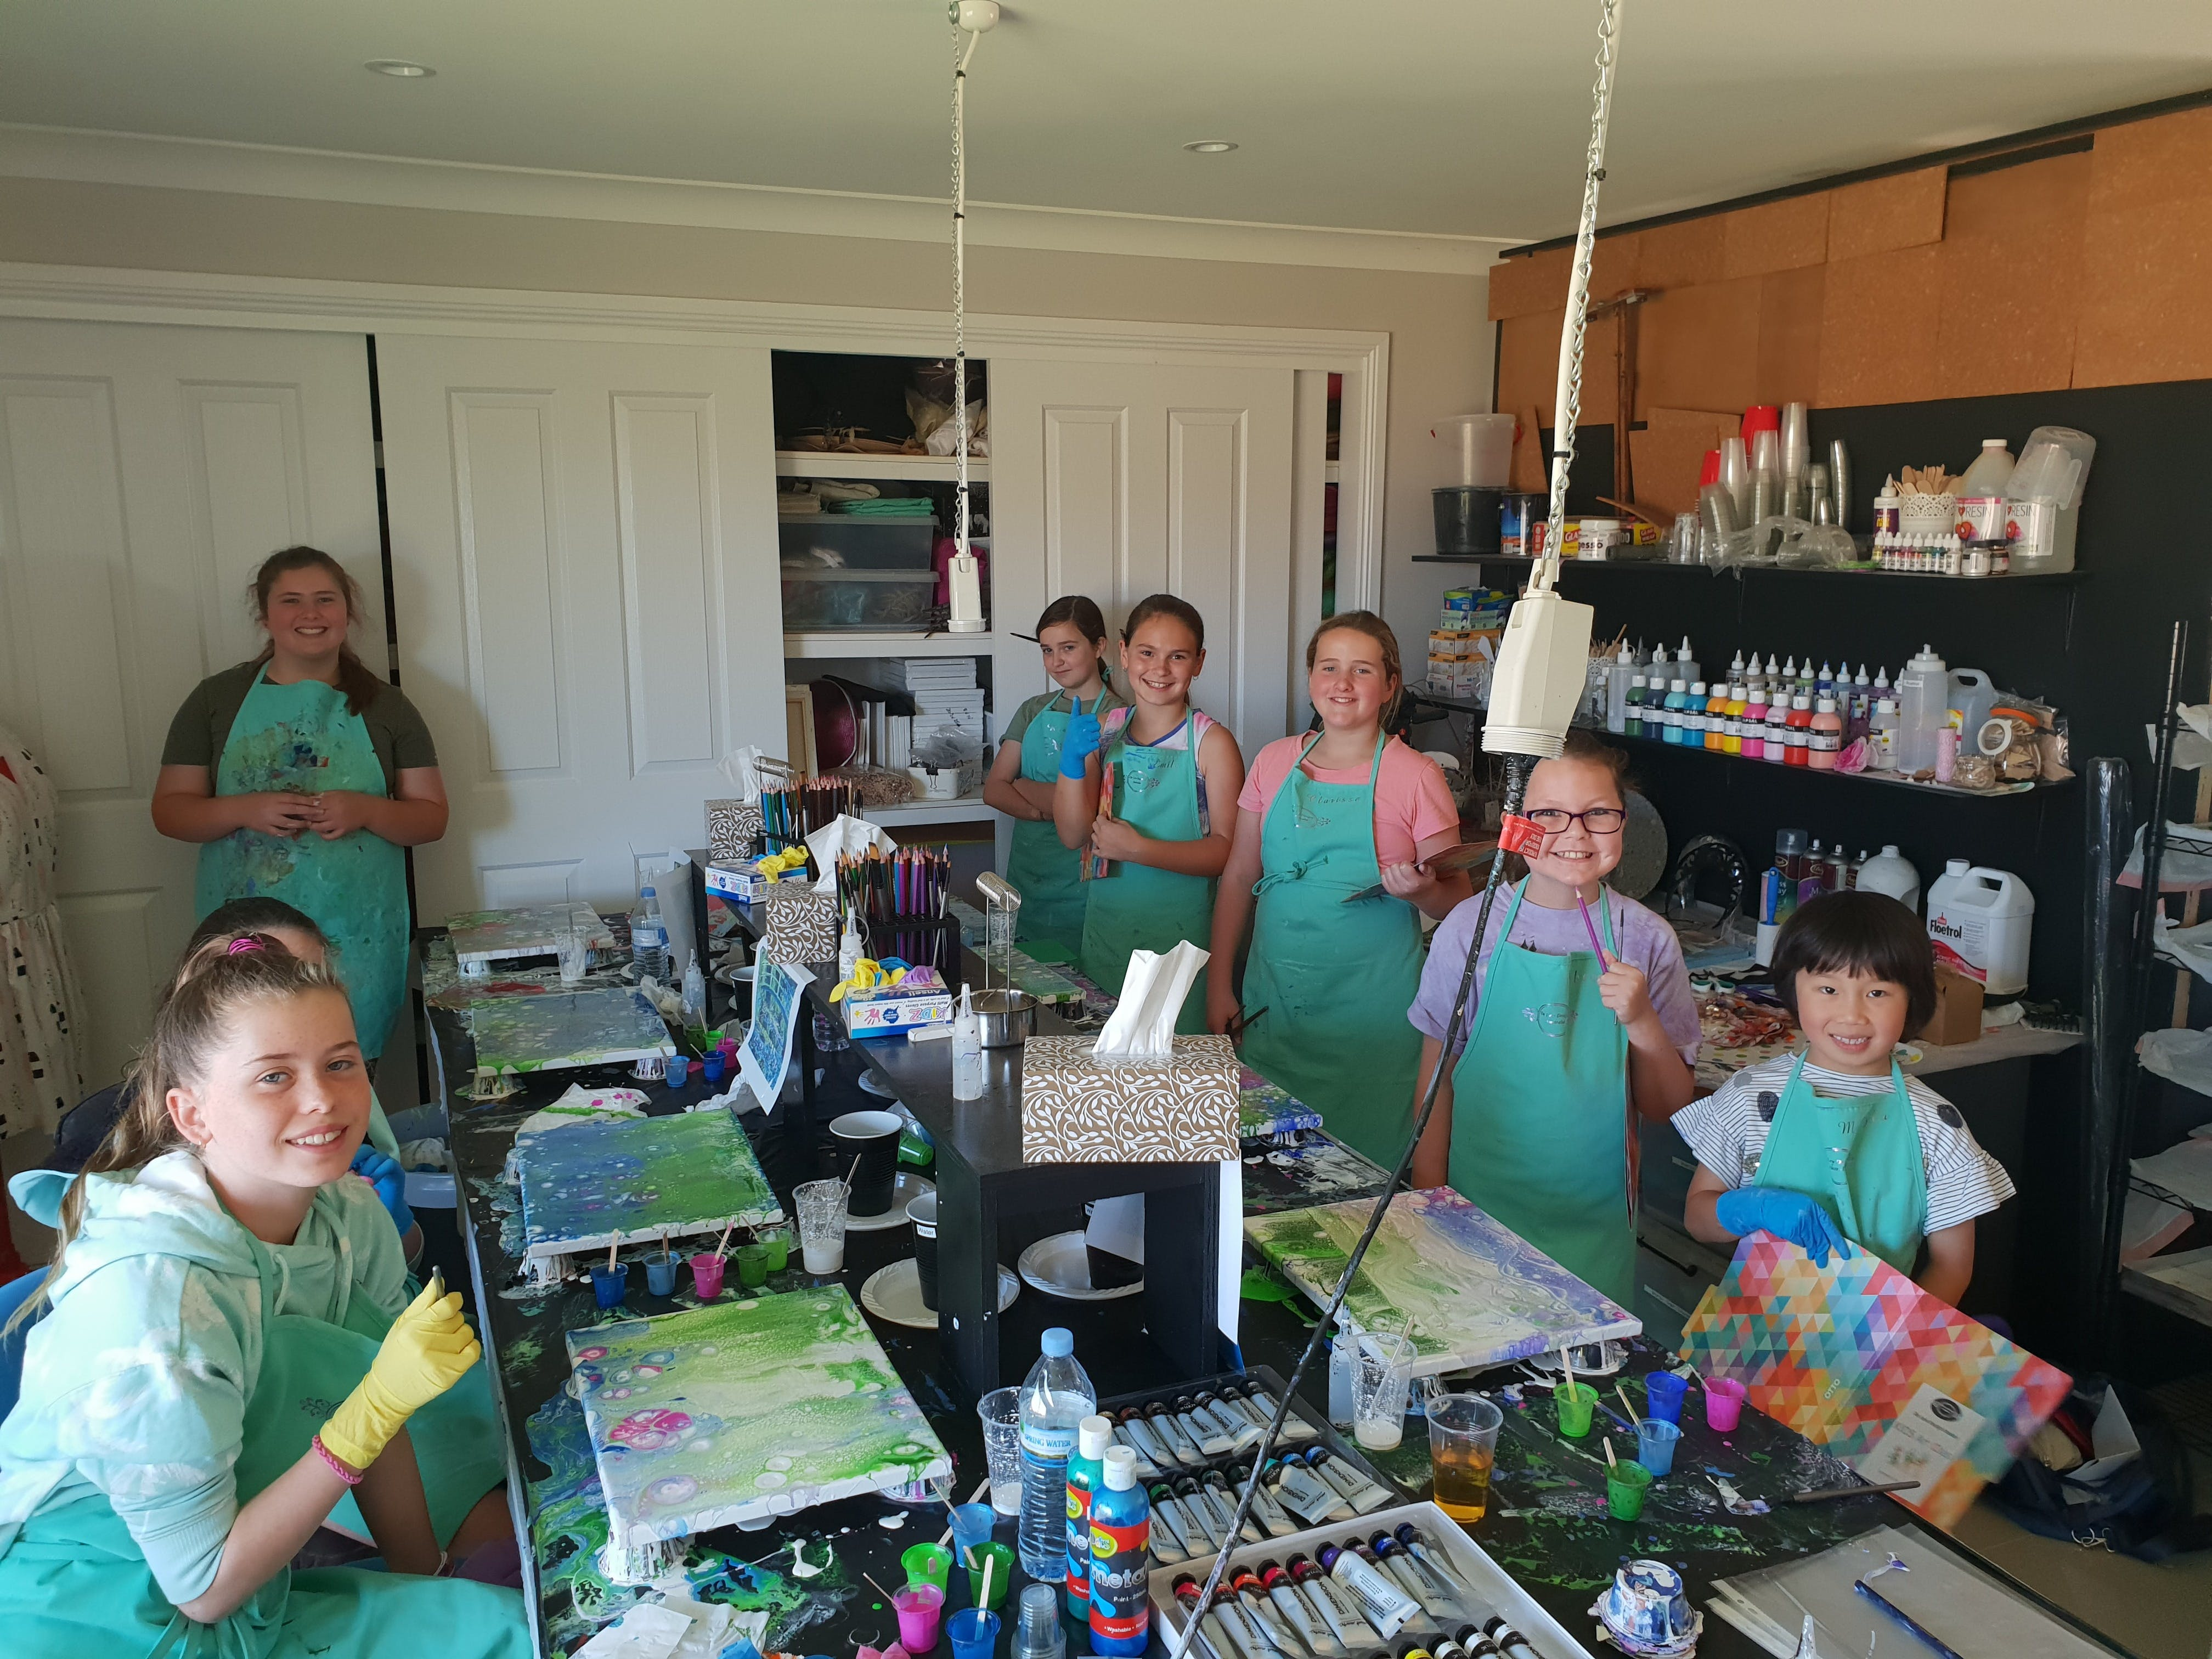 School holidays - Kids art class - Painting - Sydney Tourism